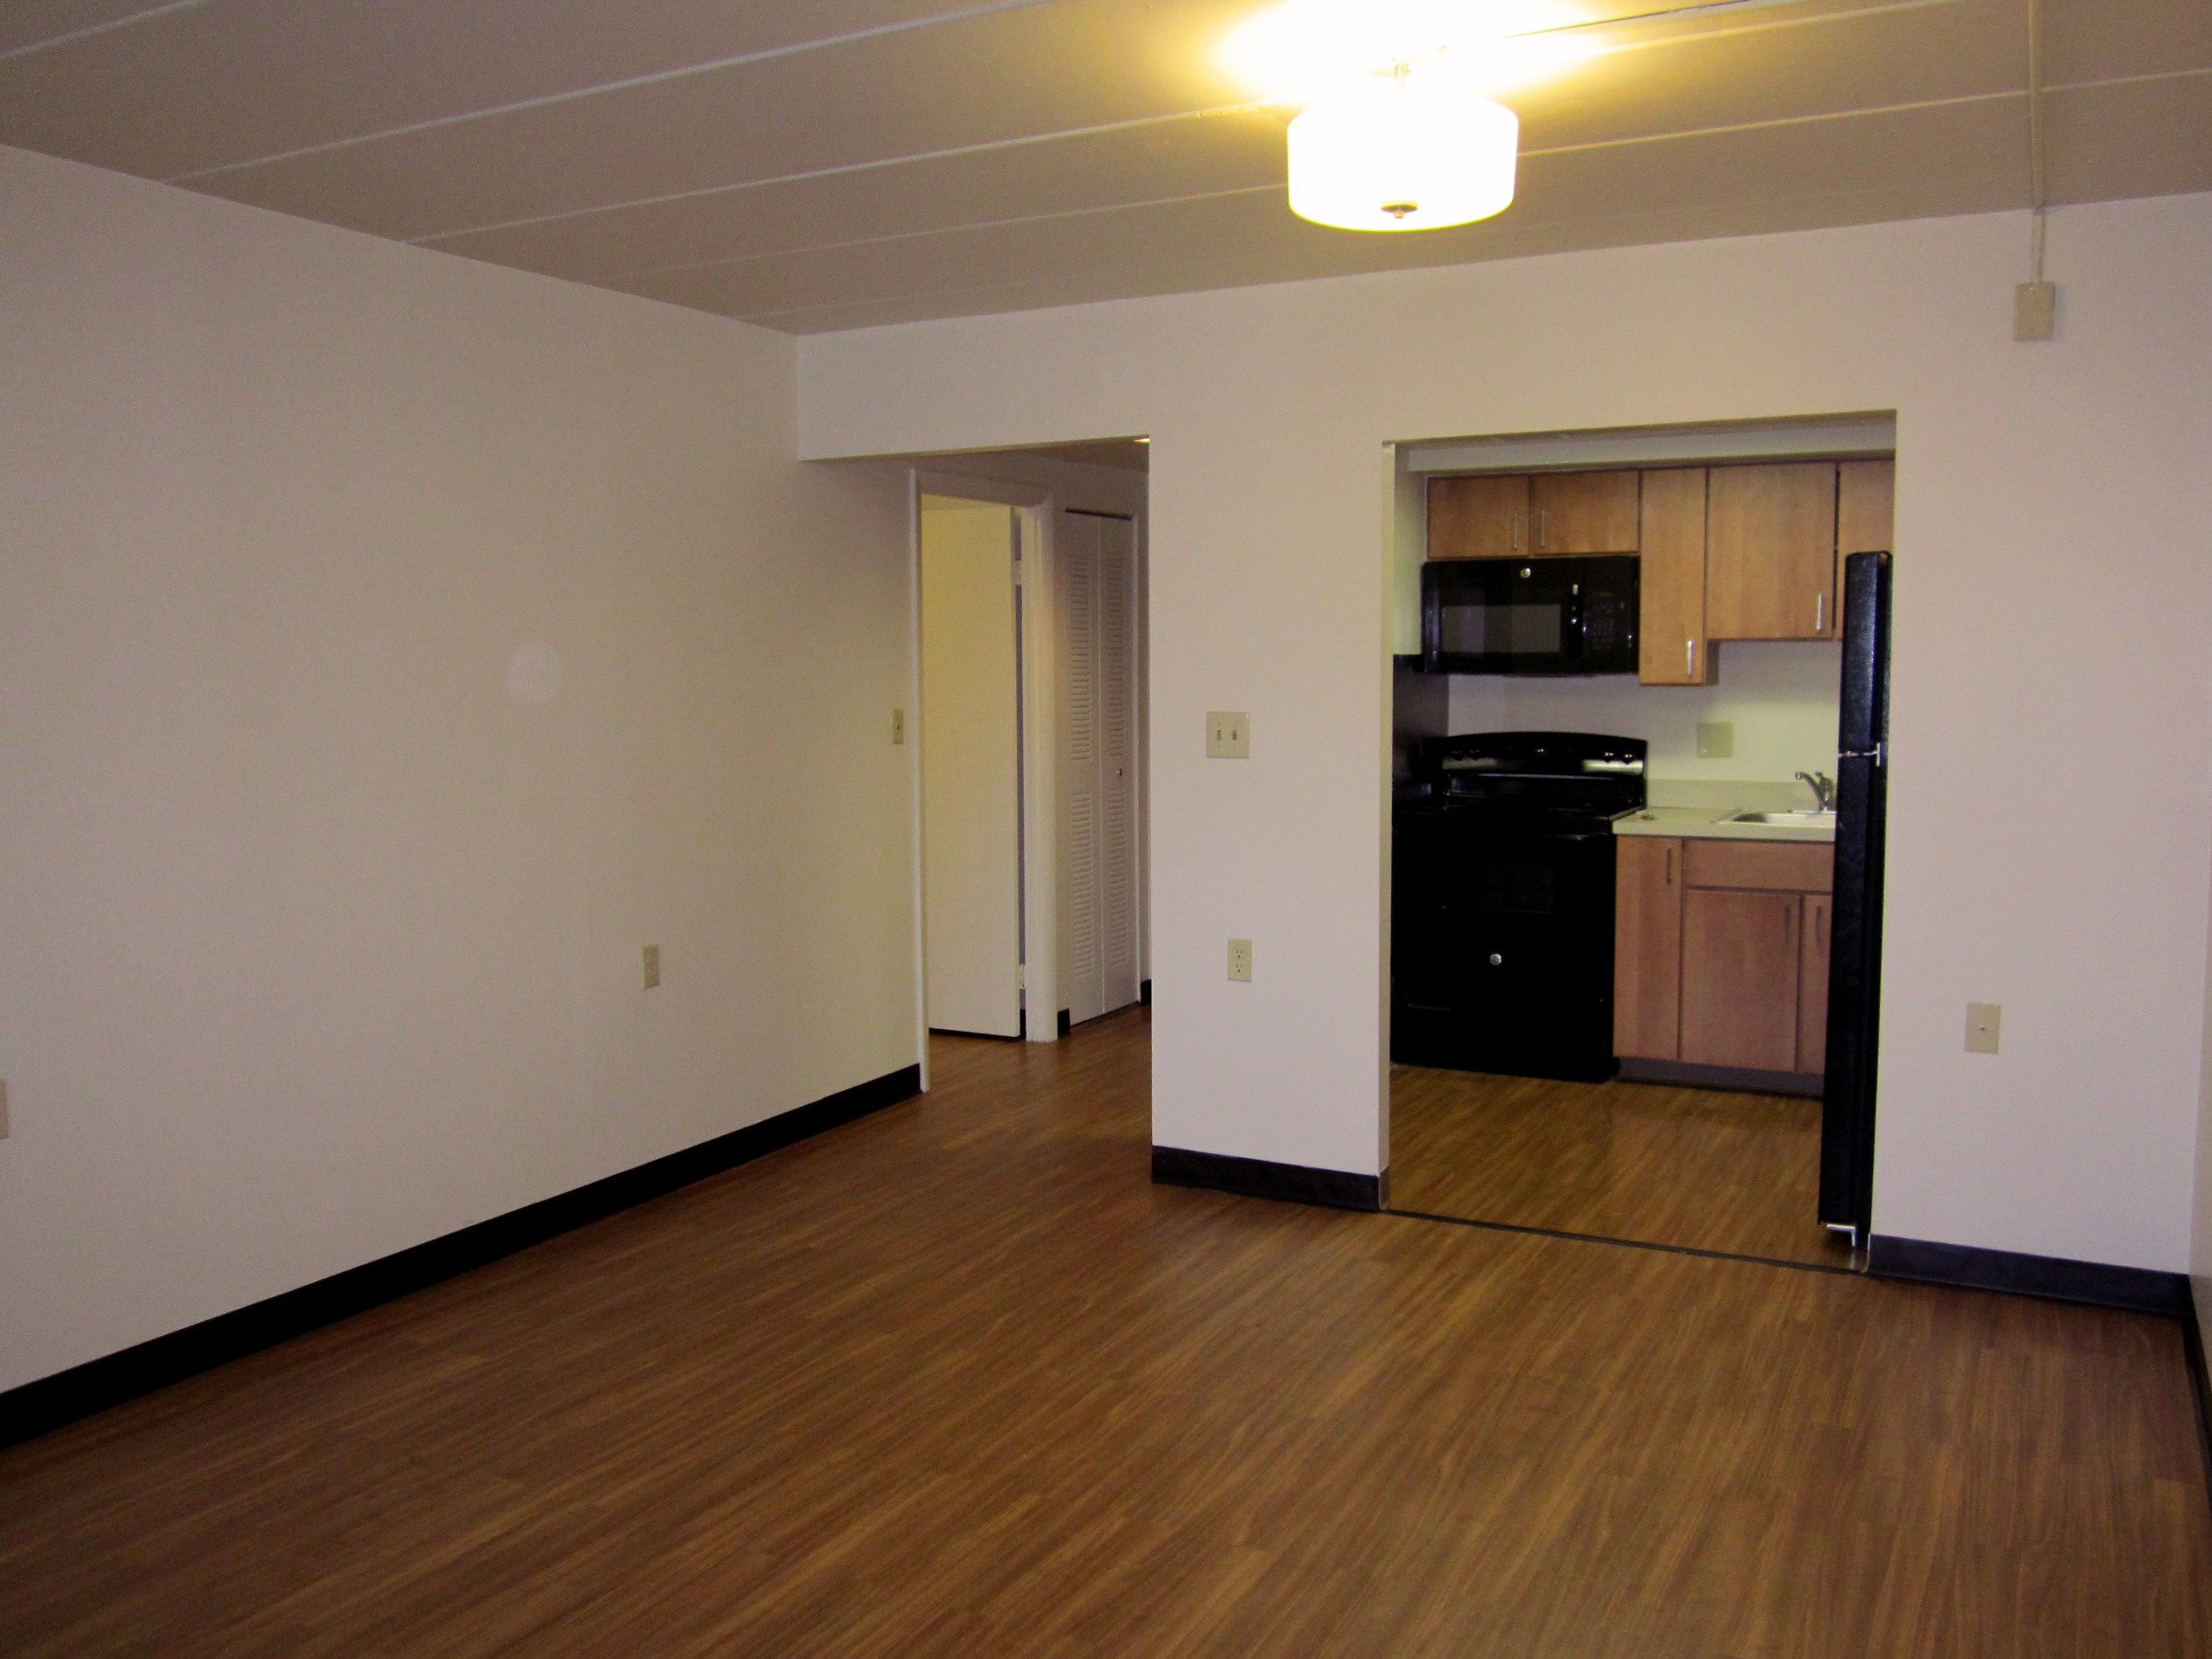 Affordable Apartments in Conshohocken, PA